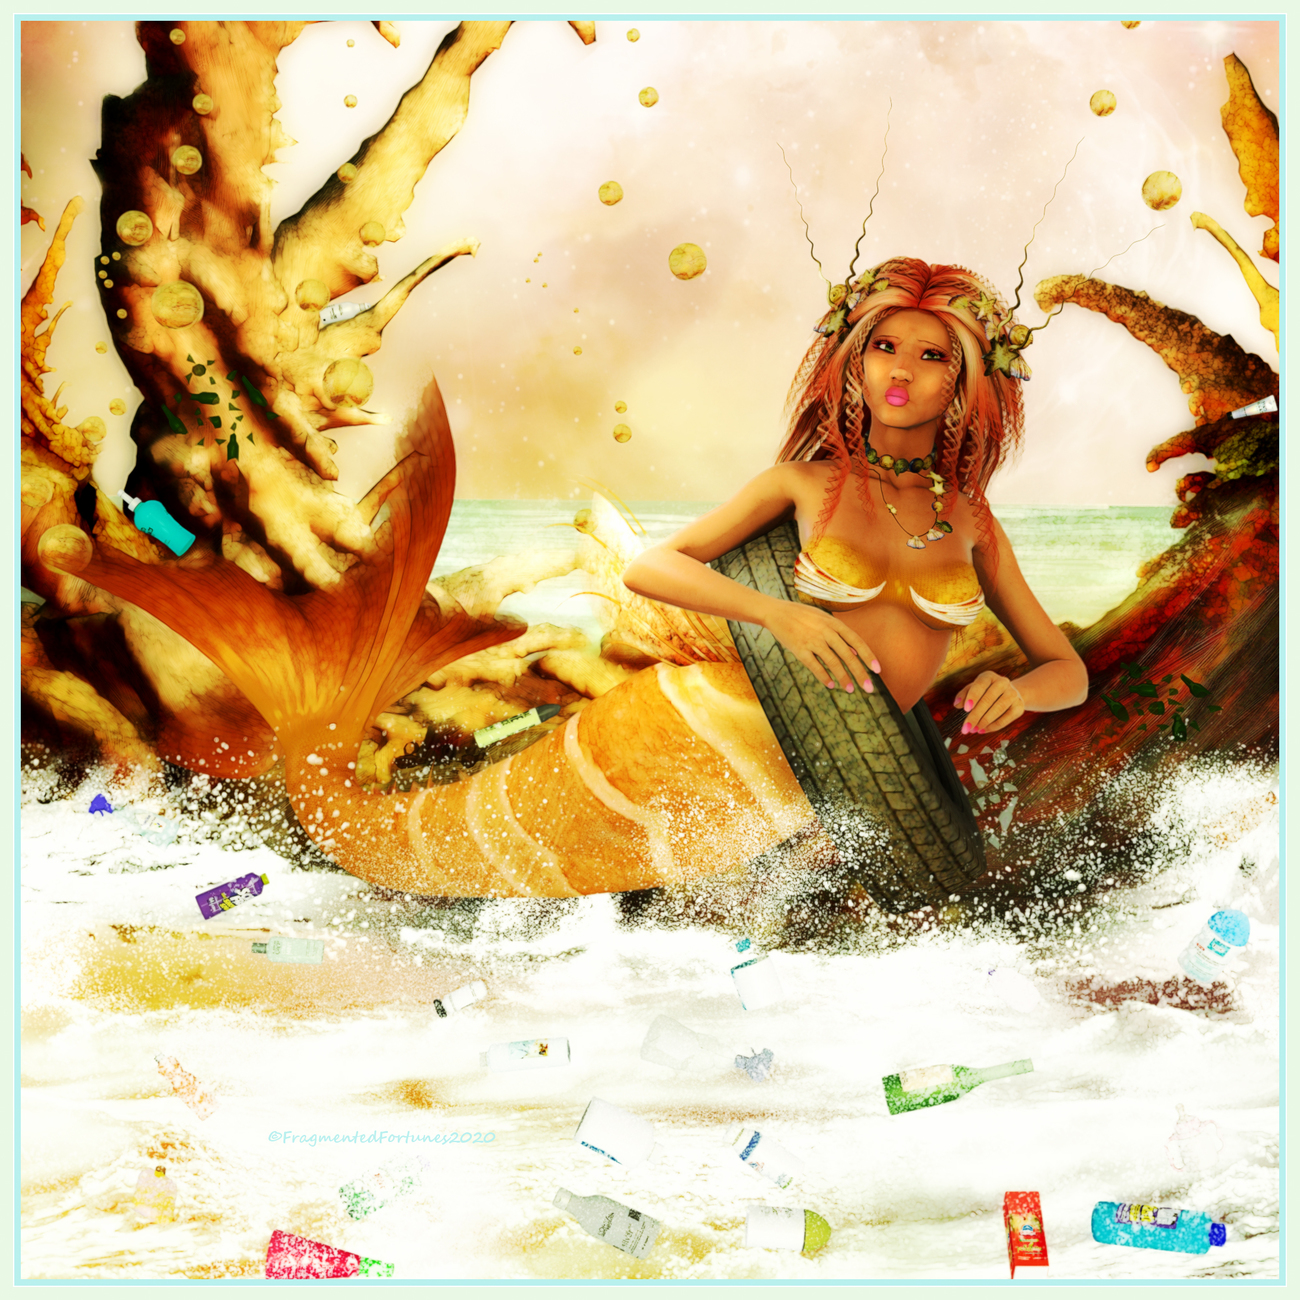 Ocean Pollution Mermaid by FragmentedFortunes